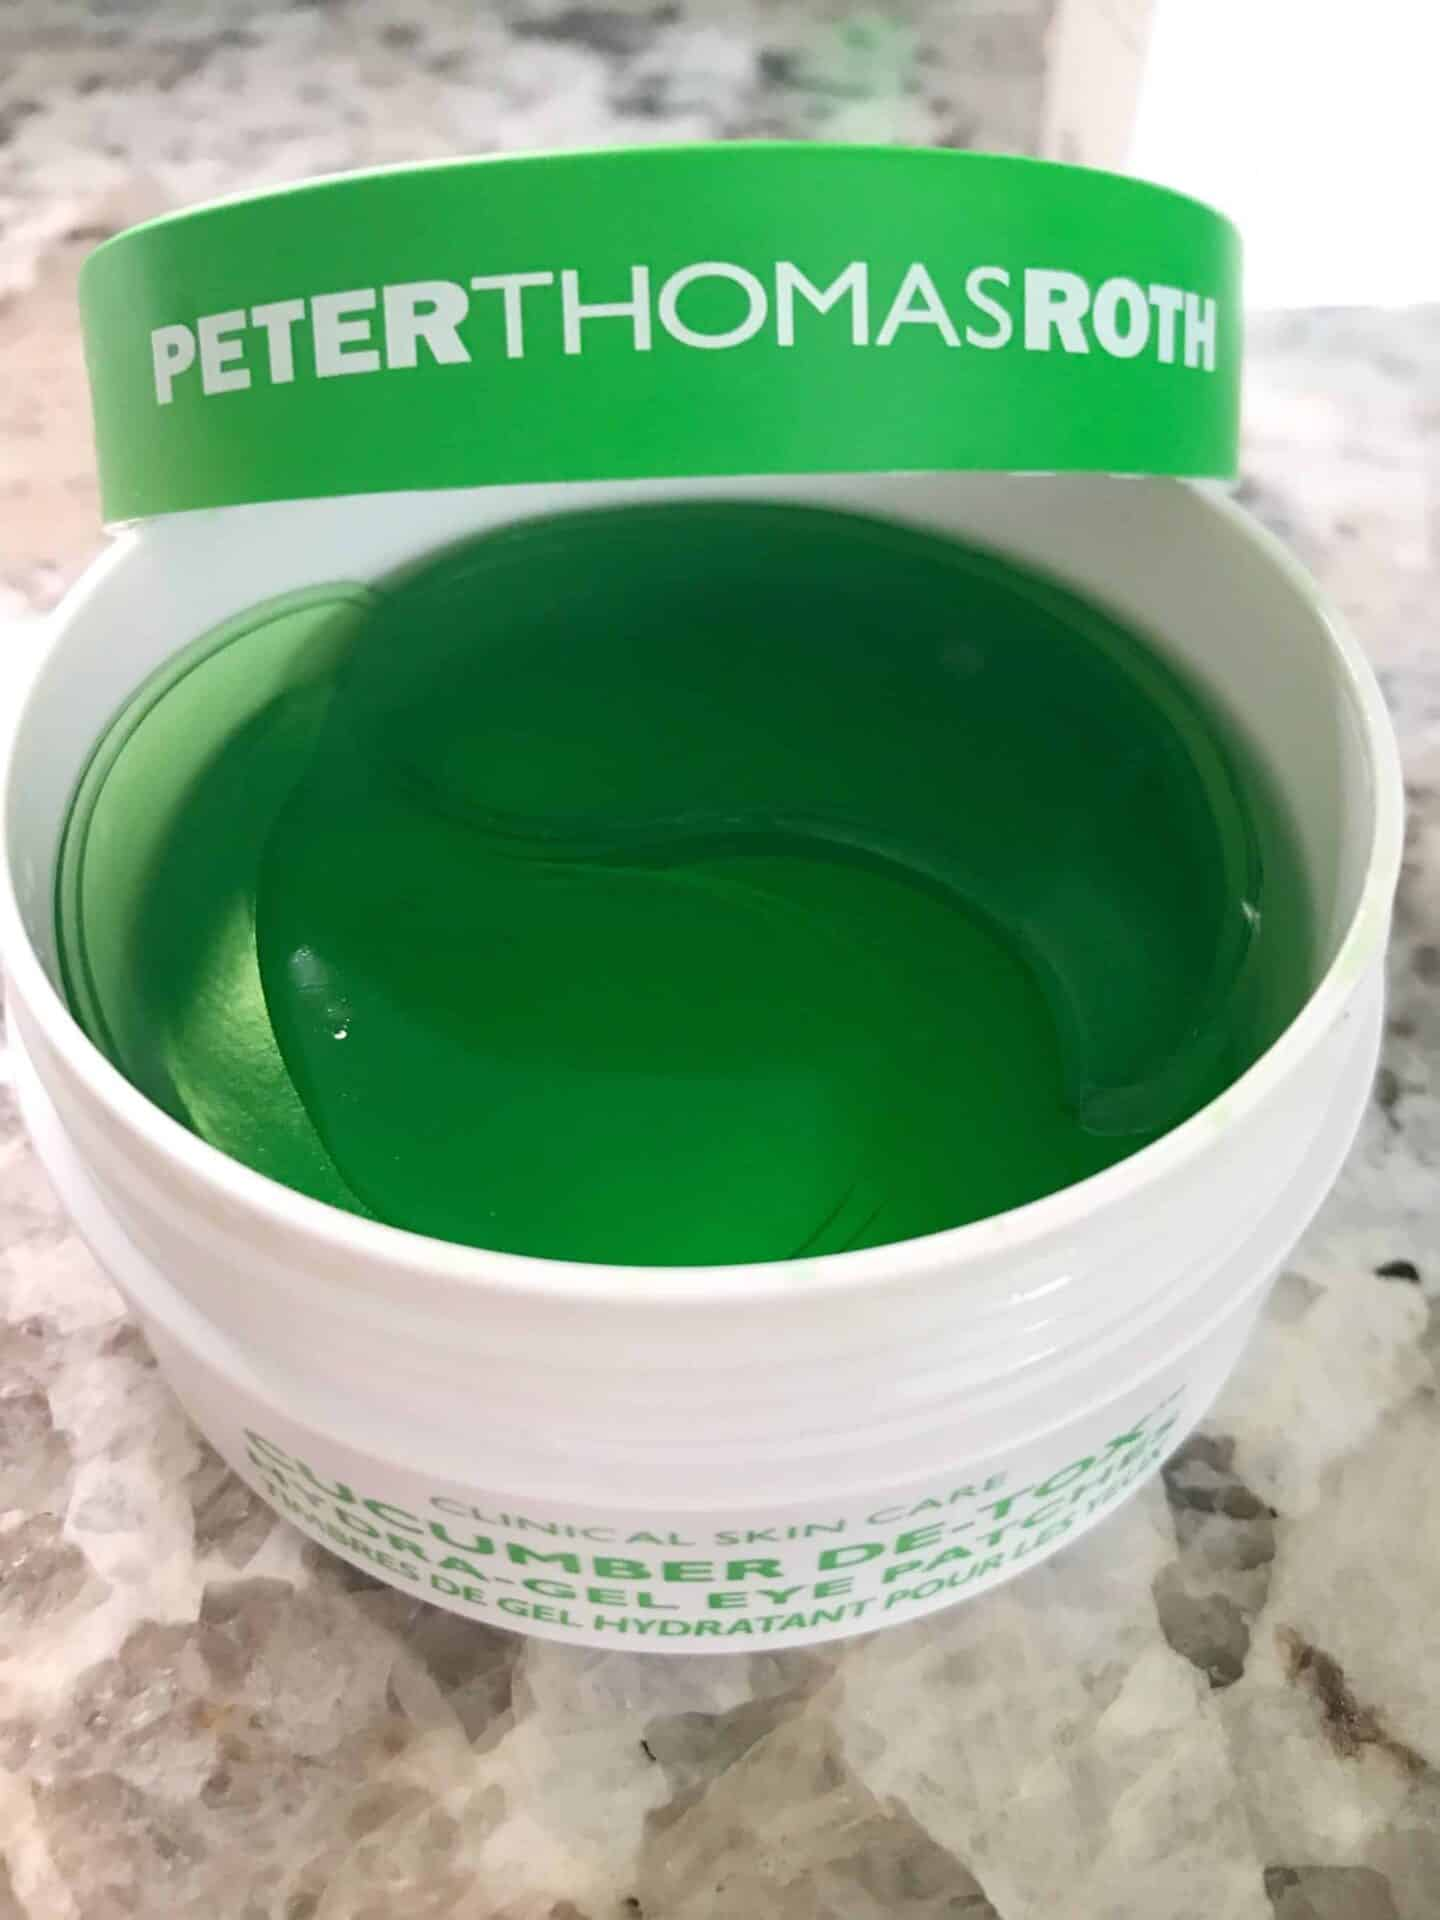 Peter Roth Detox Eye Patches